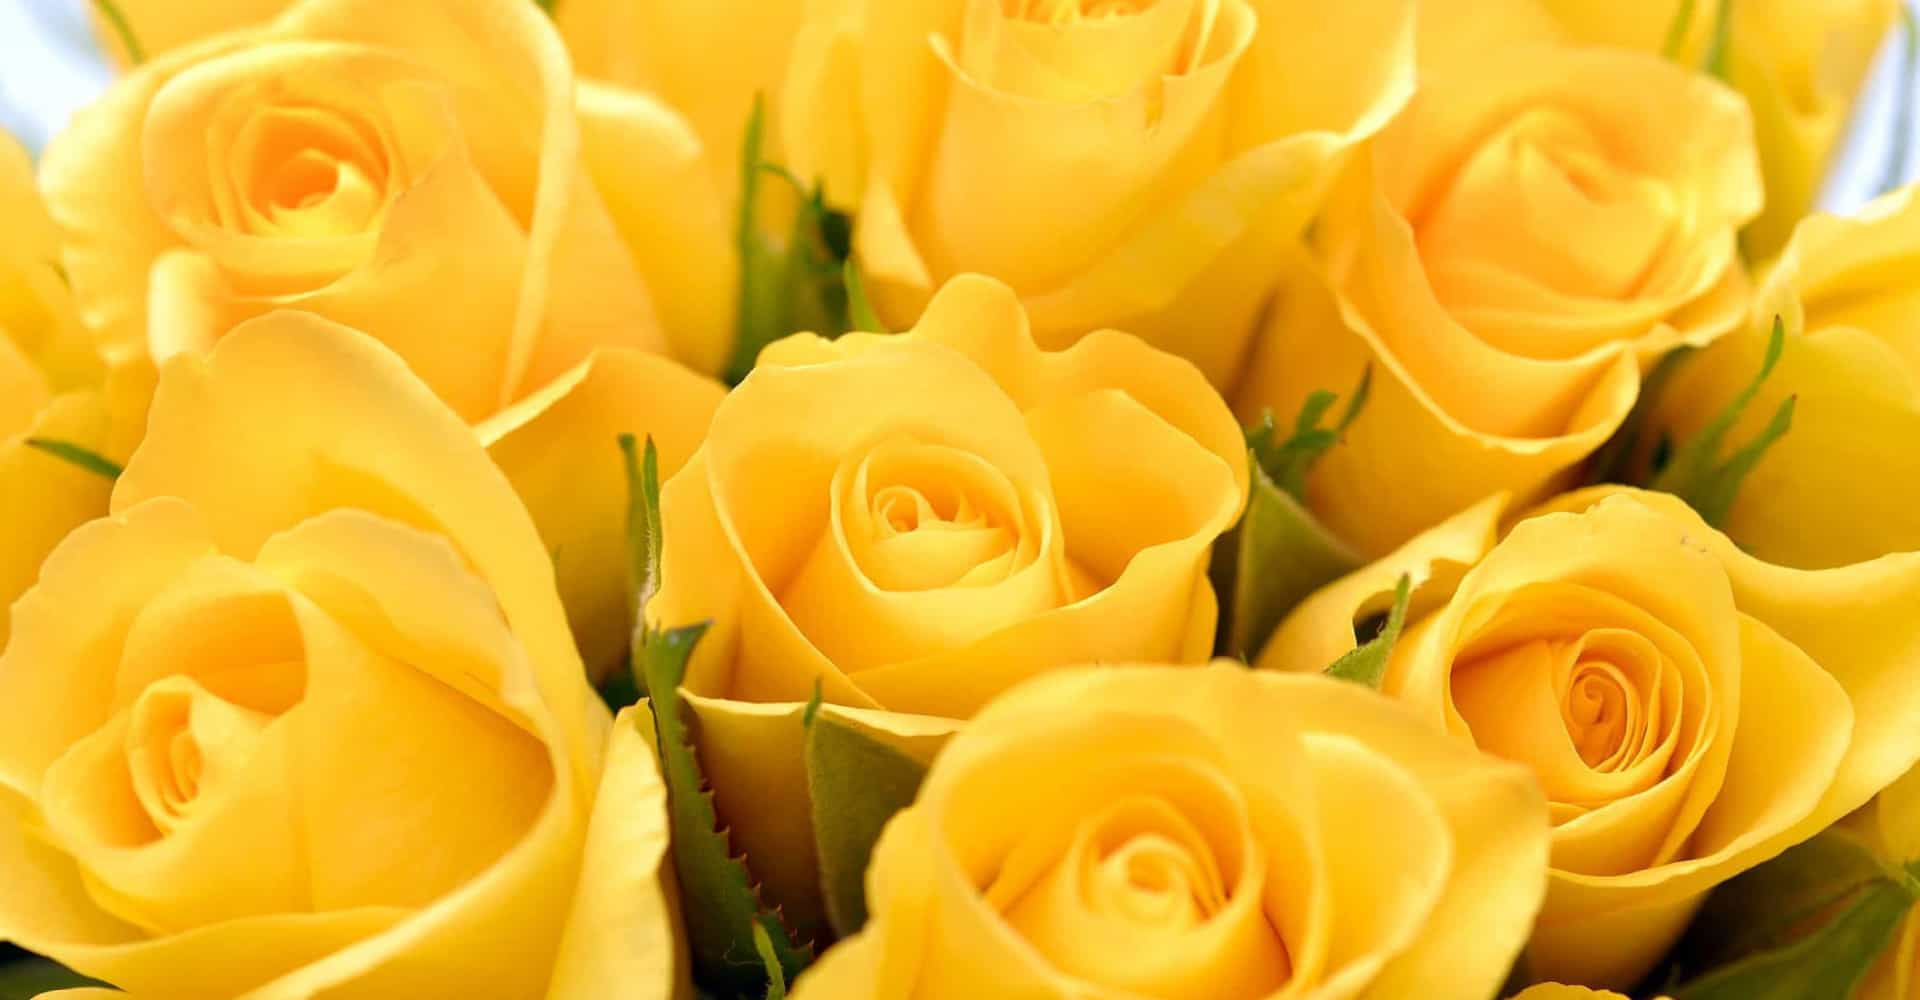 Never offer yellow roses to the love of your life